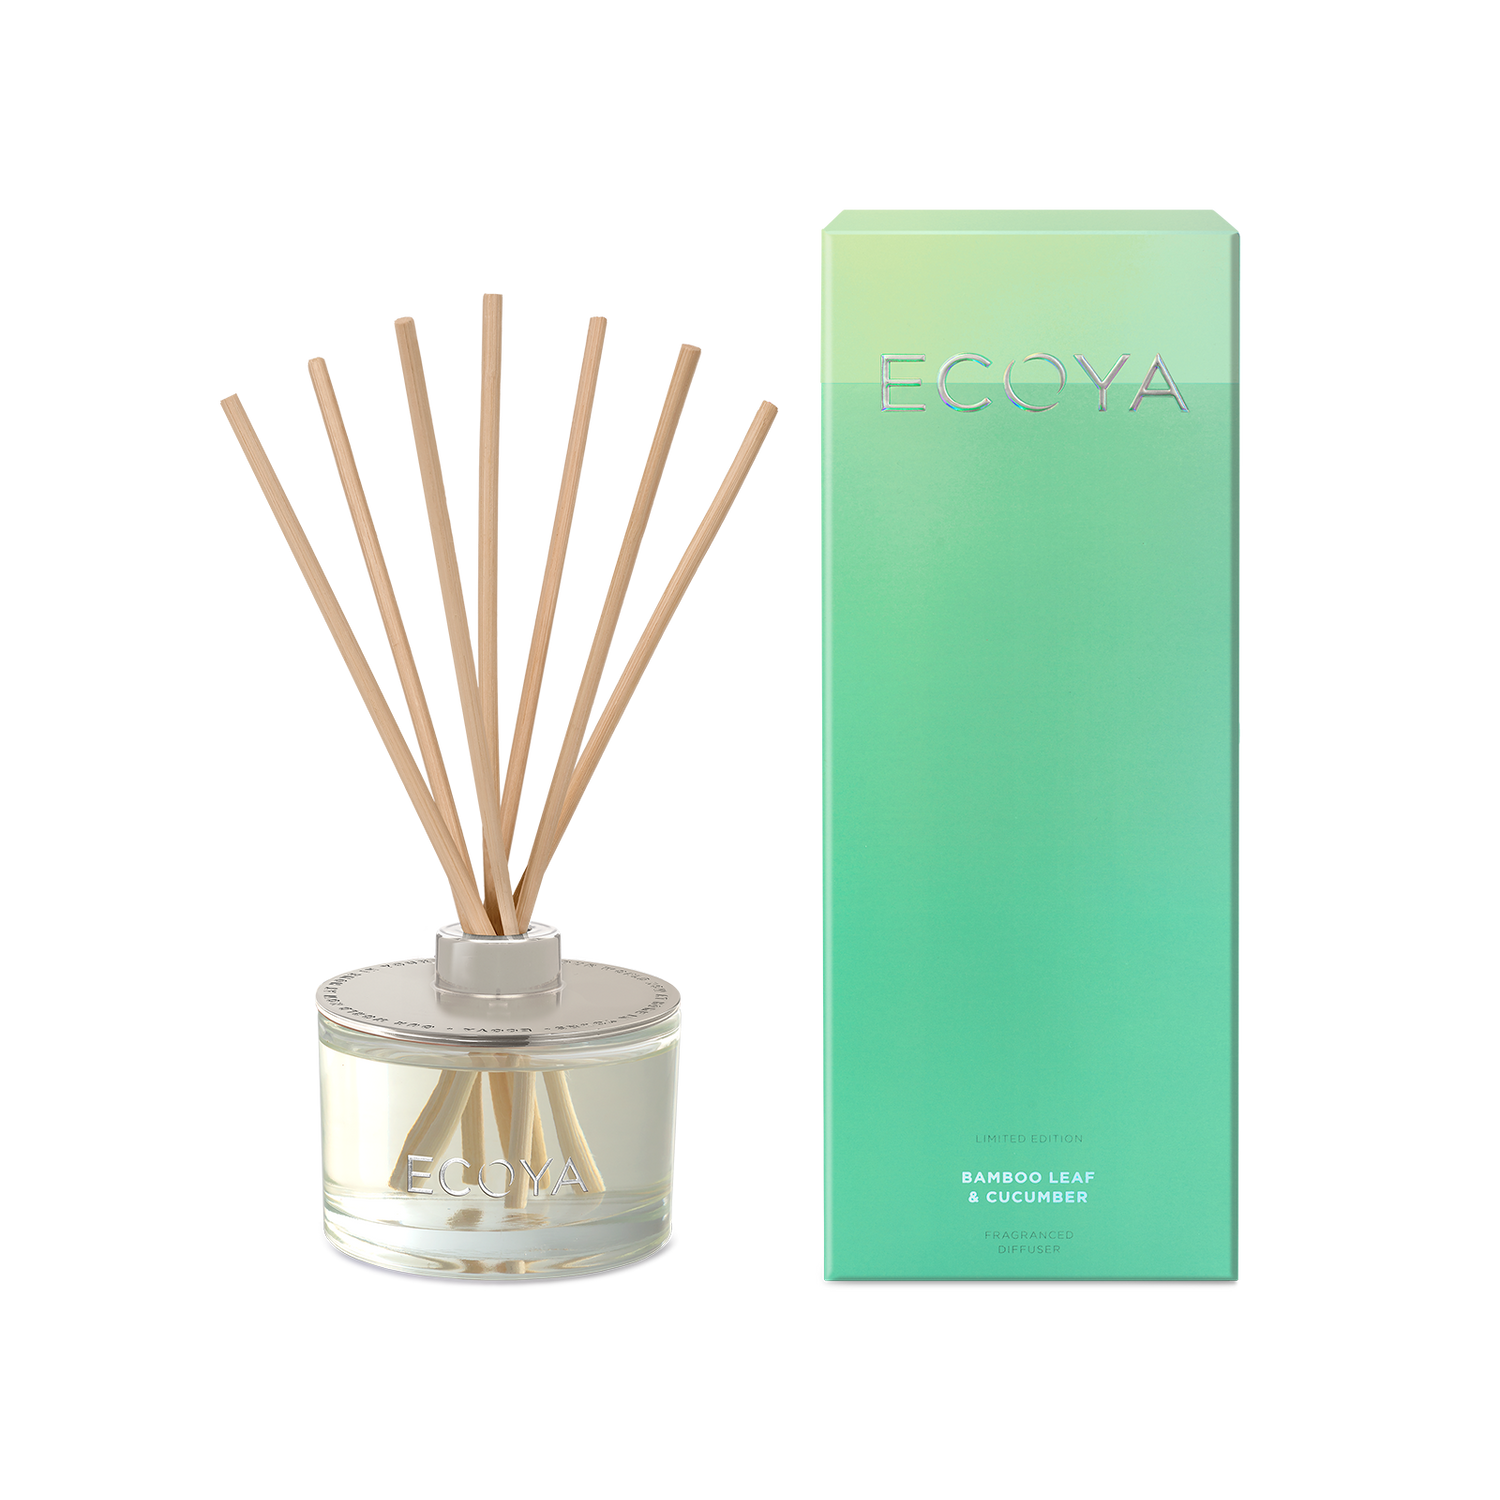 Limited Edition ECOYA Home Fragrance